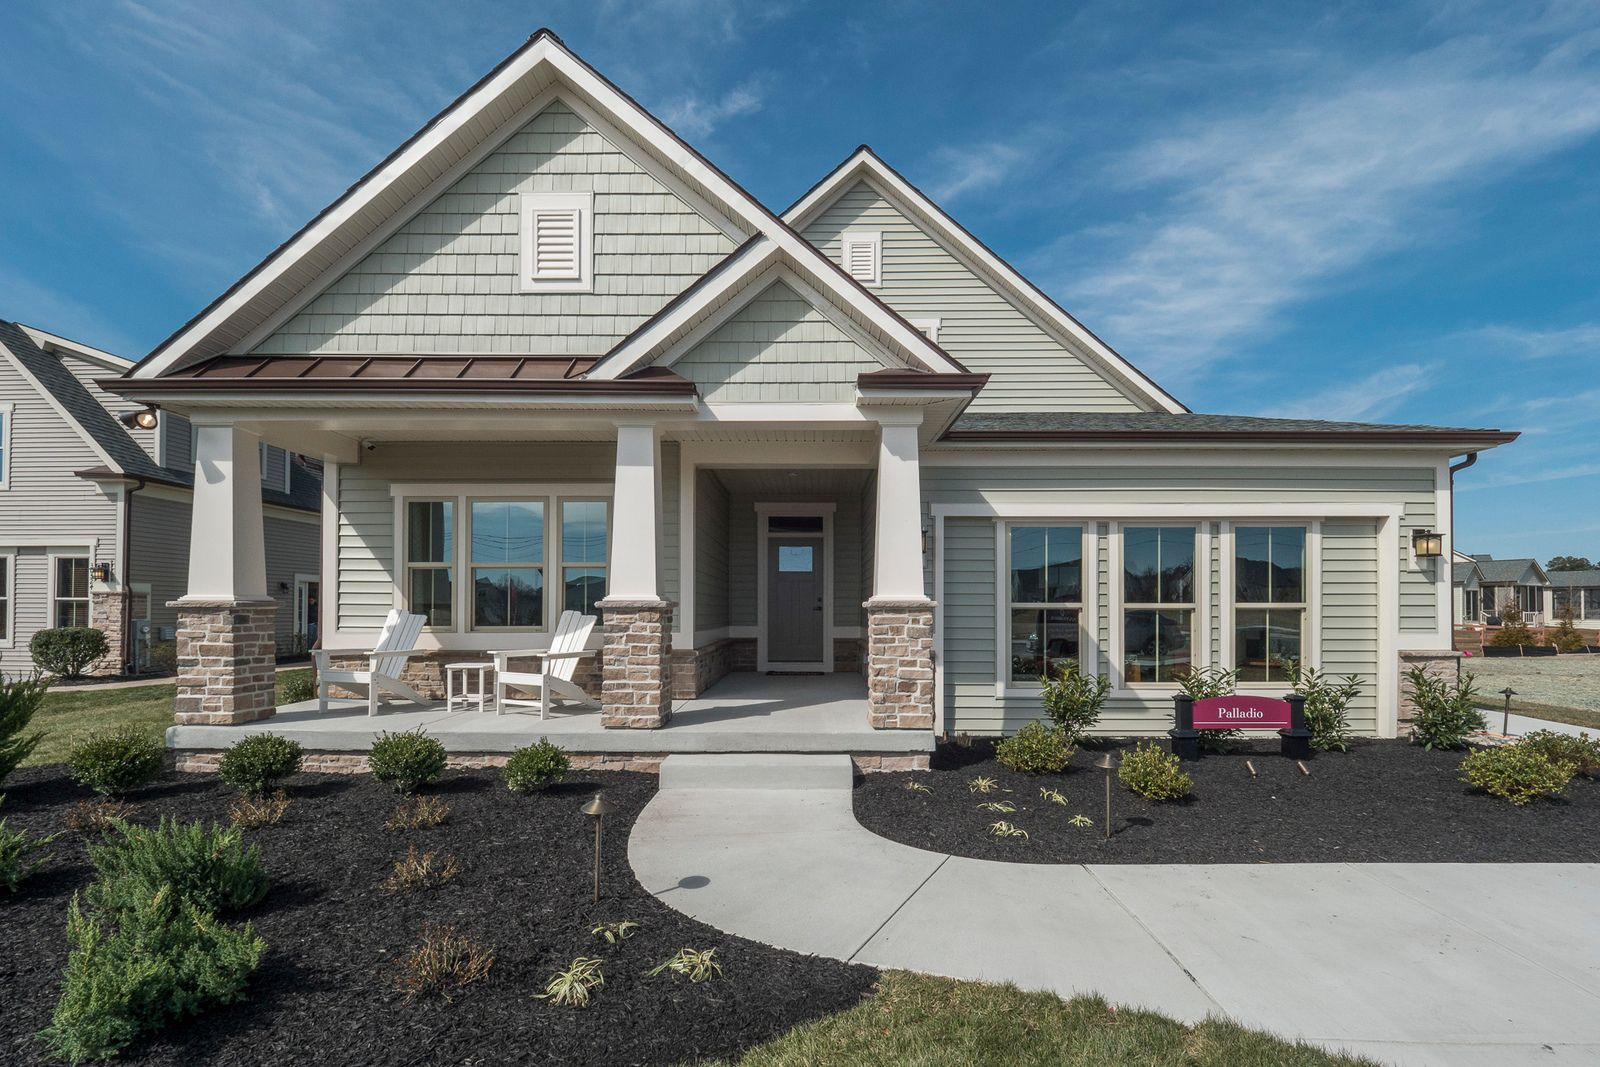 Now Selling! Come see the new Britlyn!:New homesites just released forthis sought-after community! No yardwork homes w/ low $150/month HOA dues. Landscaping, power washing & more included!Schedule your visit today!